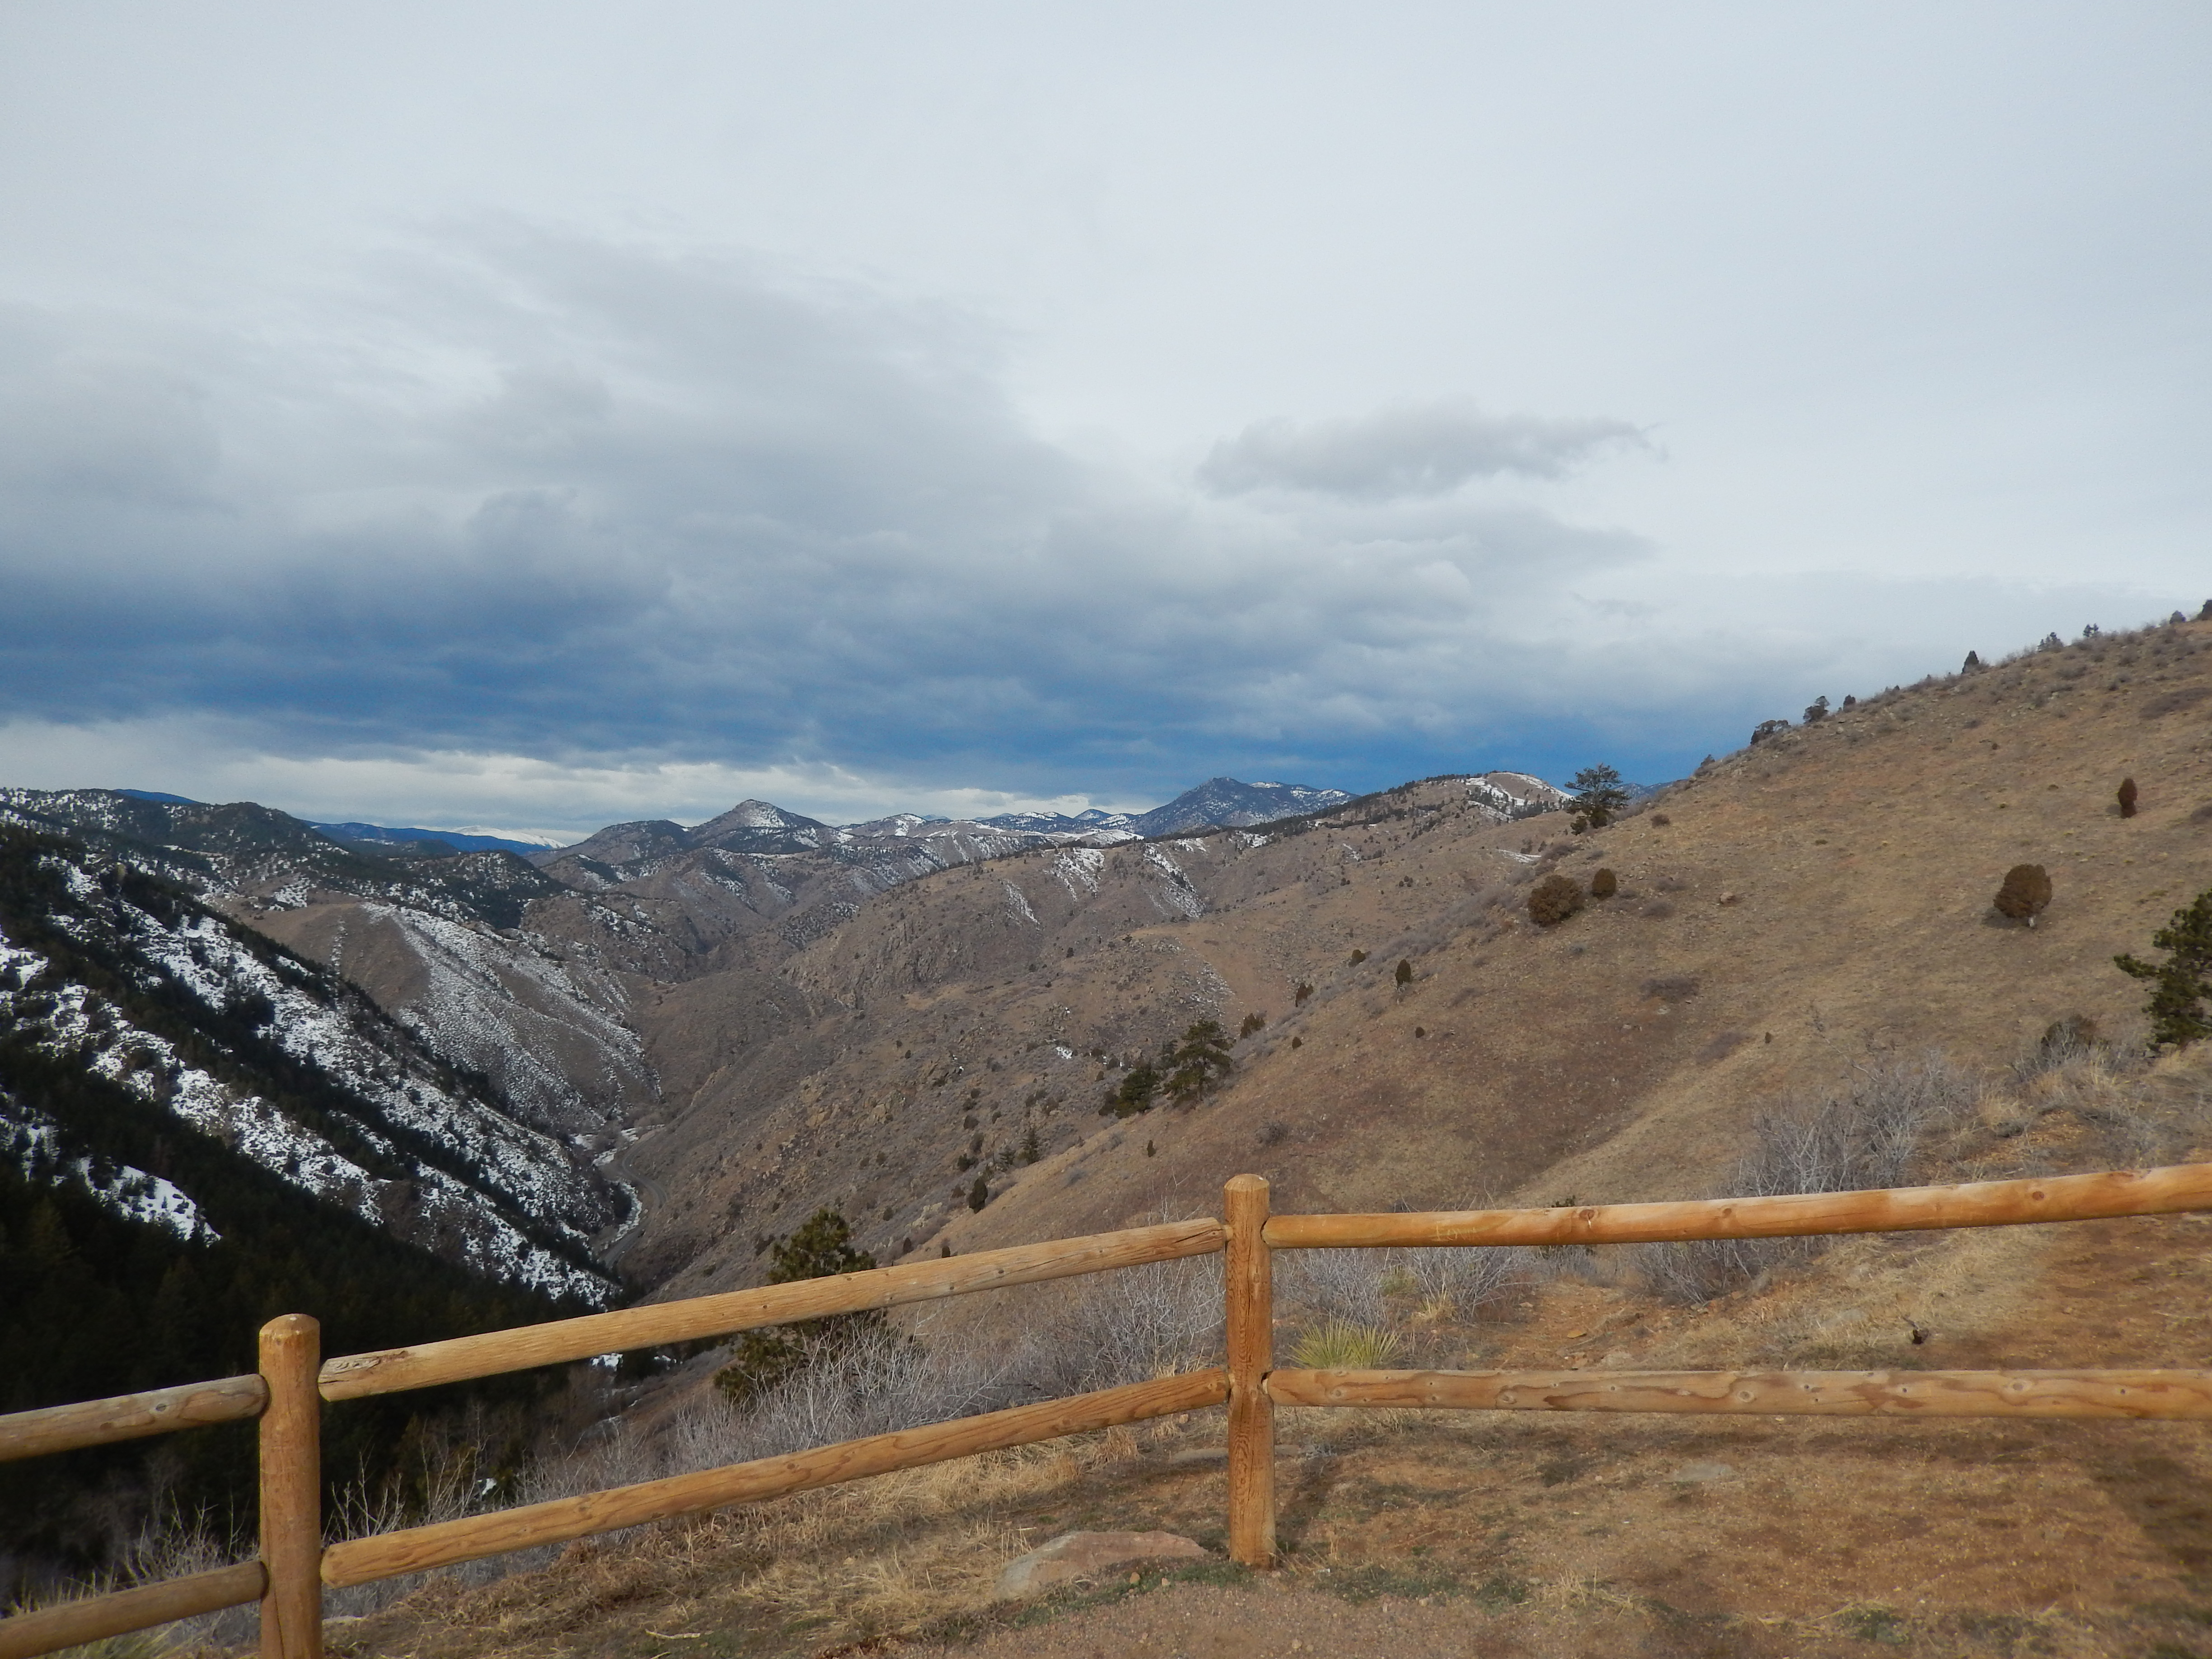 House On Top Of Lookout Mountain: Lookout Mountain Via Chimney Gulch, Golden CO Hiked 2/15